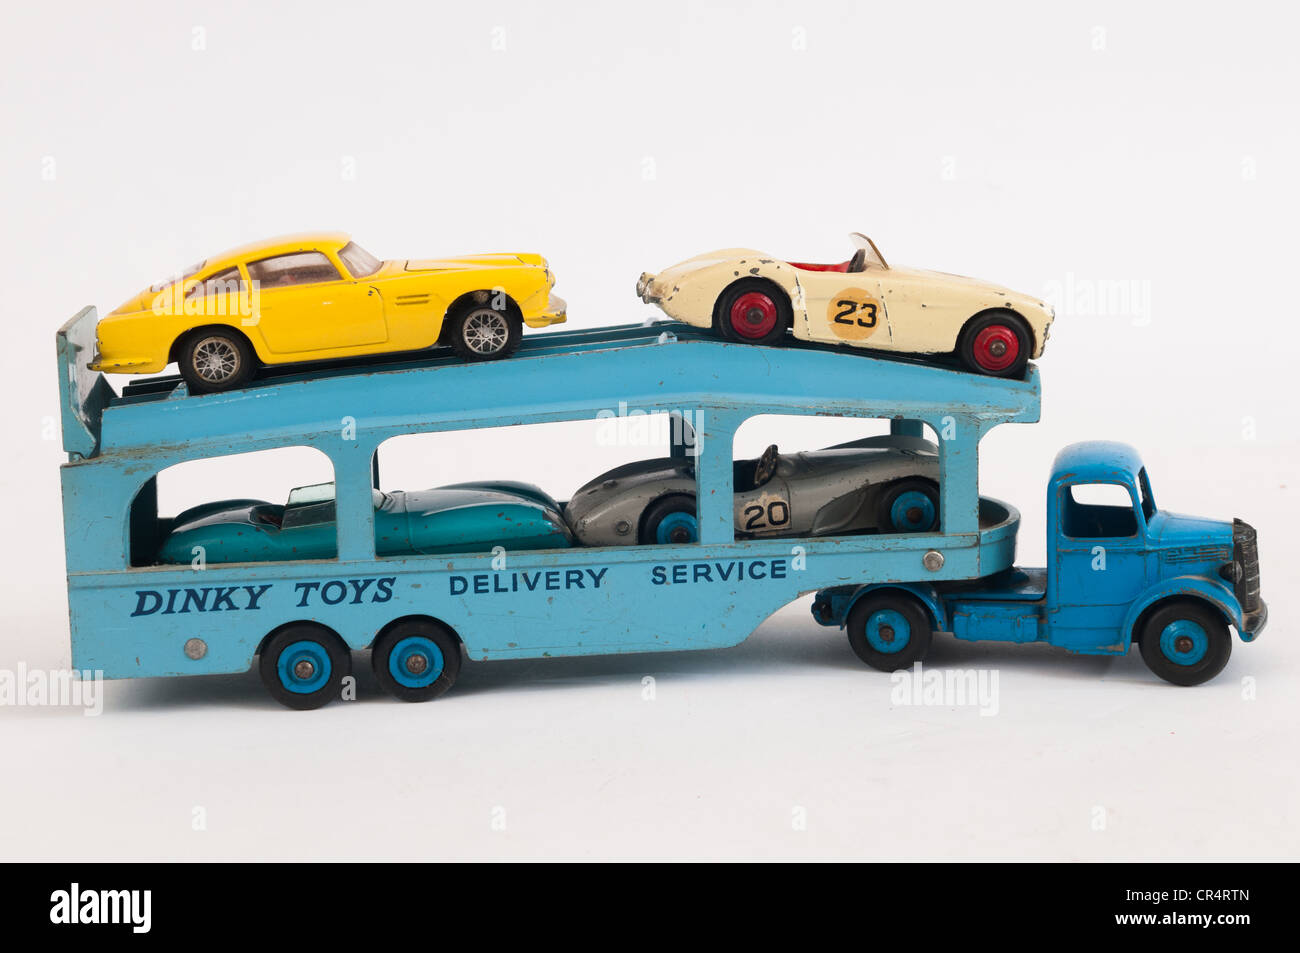 Dinky Toys Bedford Delivery Service Transporter loaded with sports cars - Stock Image